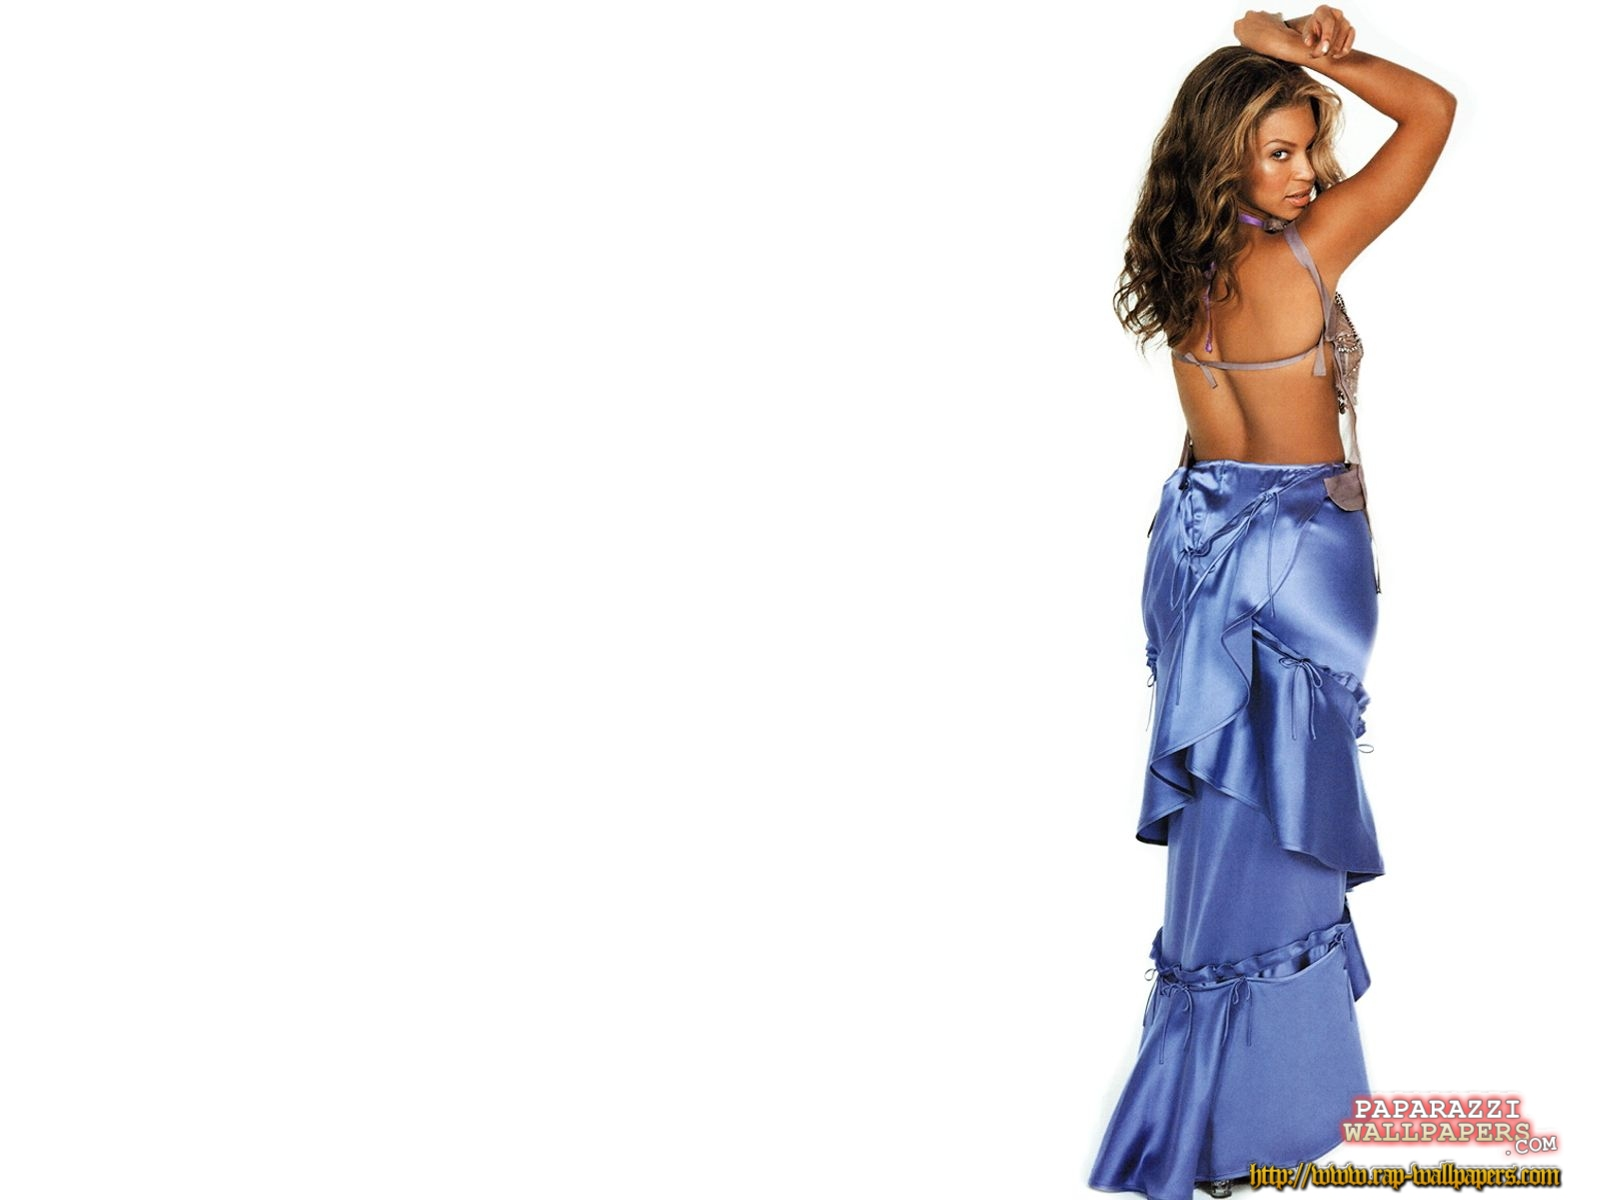 beyonce wallpapers 10